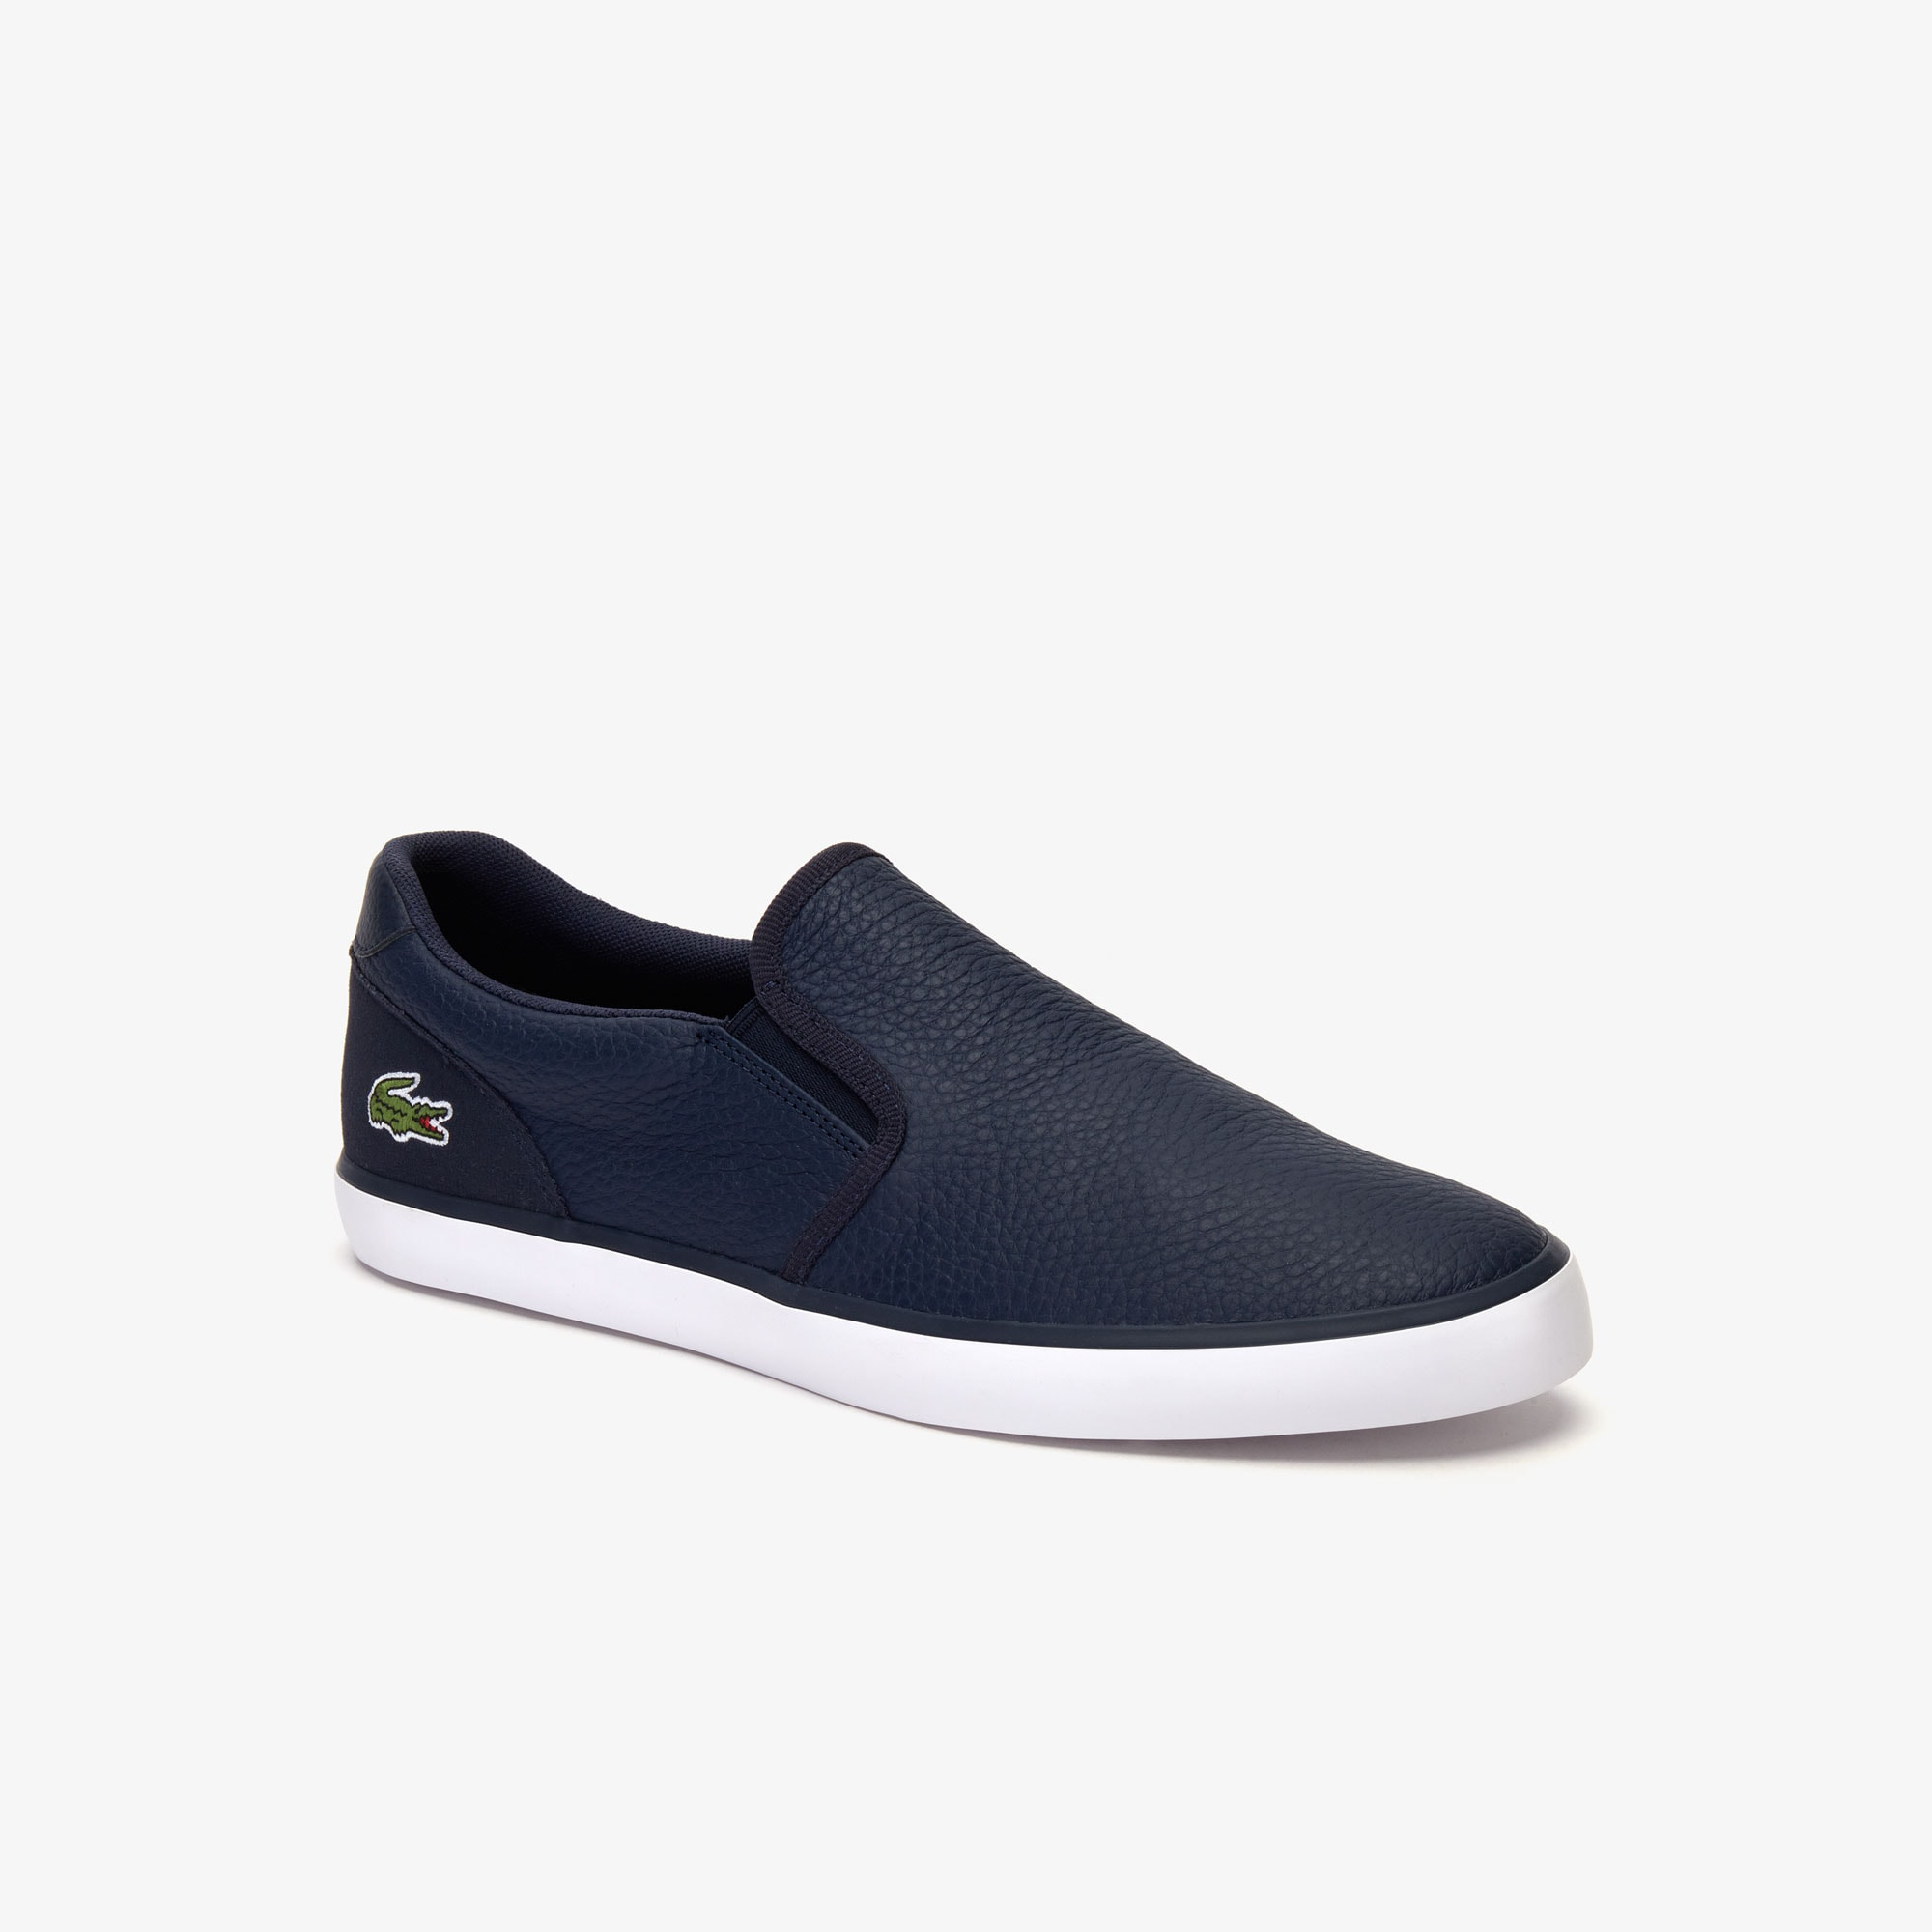 3792de4e Men's Shoes | Shoes for Men | LACOSTE